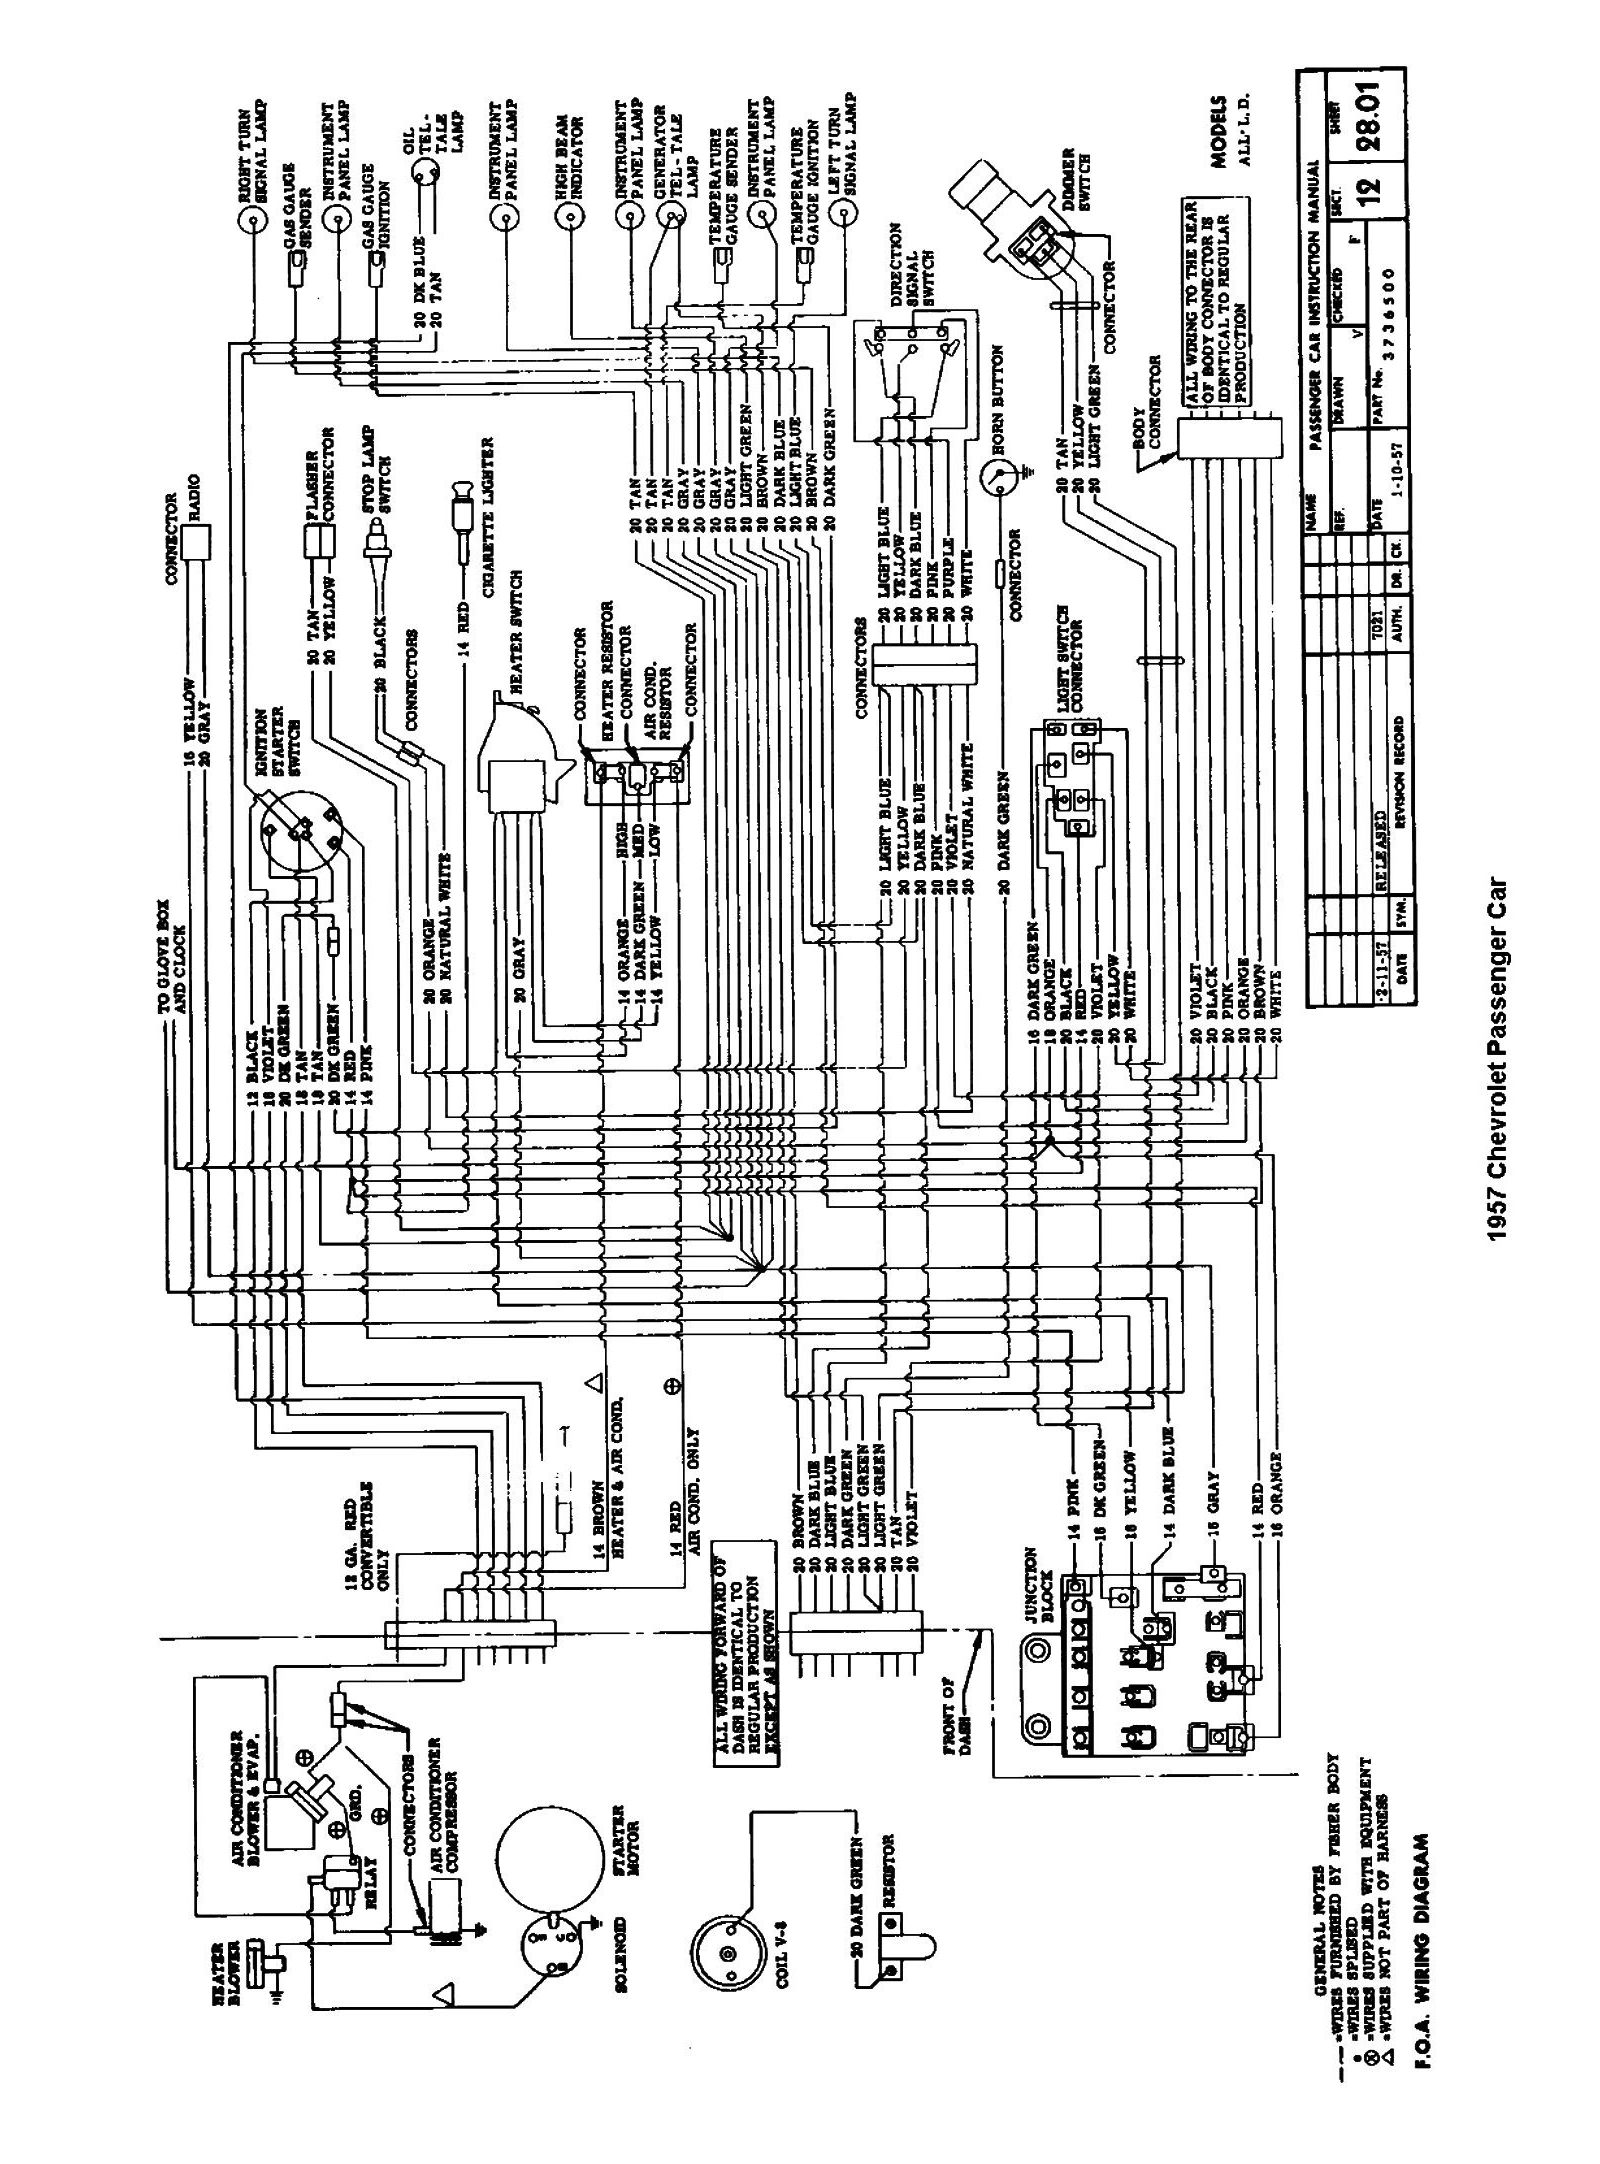 1955 chevy headlight switch wiring diagram for caravan solar panel with anderson plug from car wiper cable free engine image